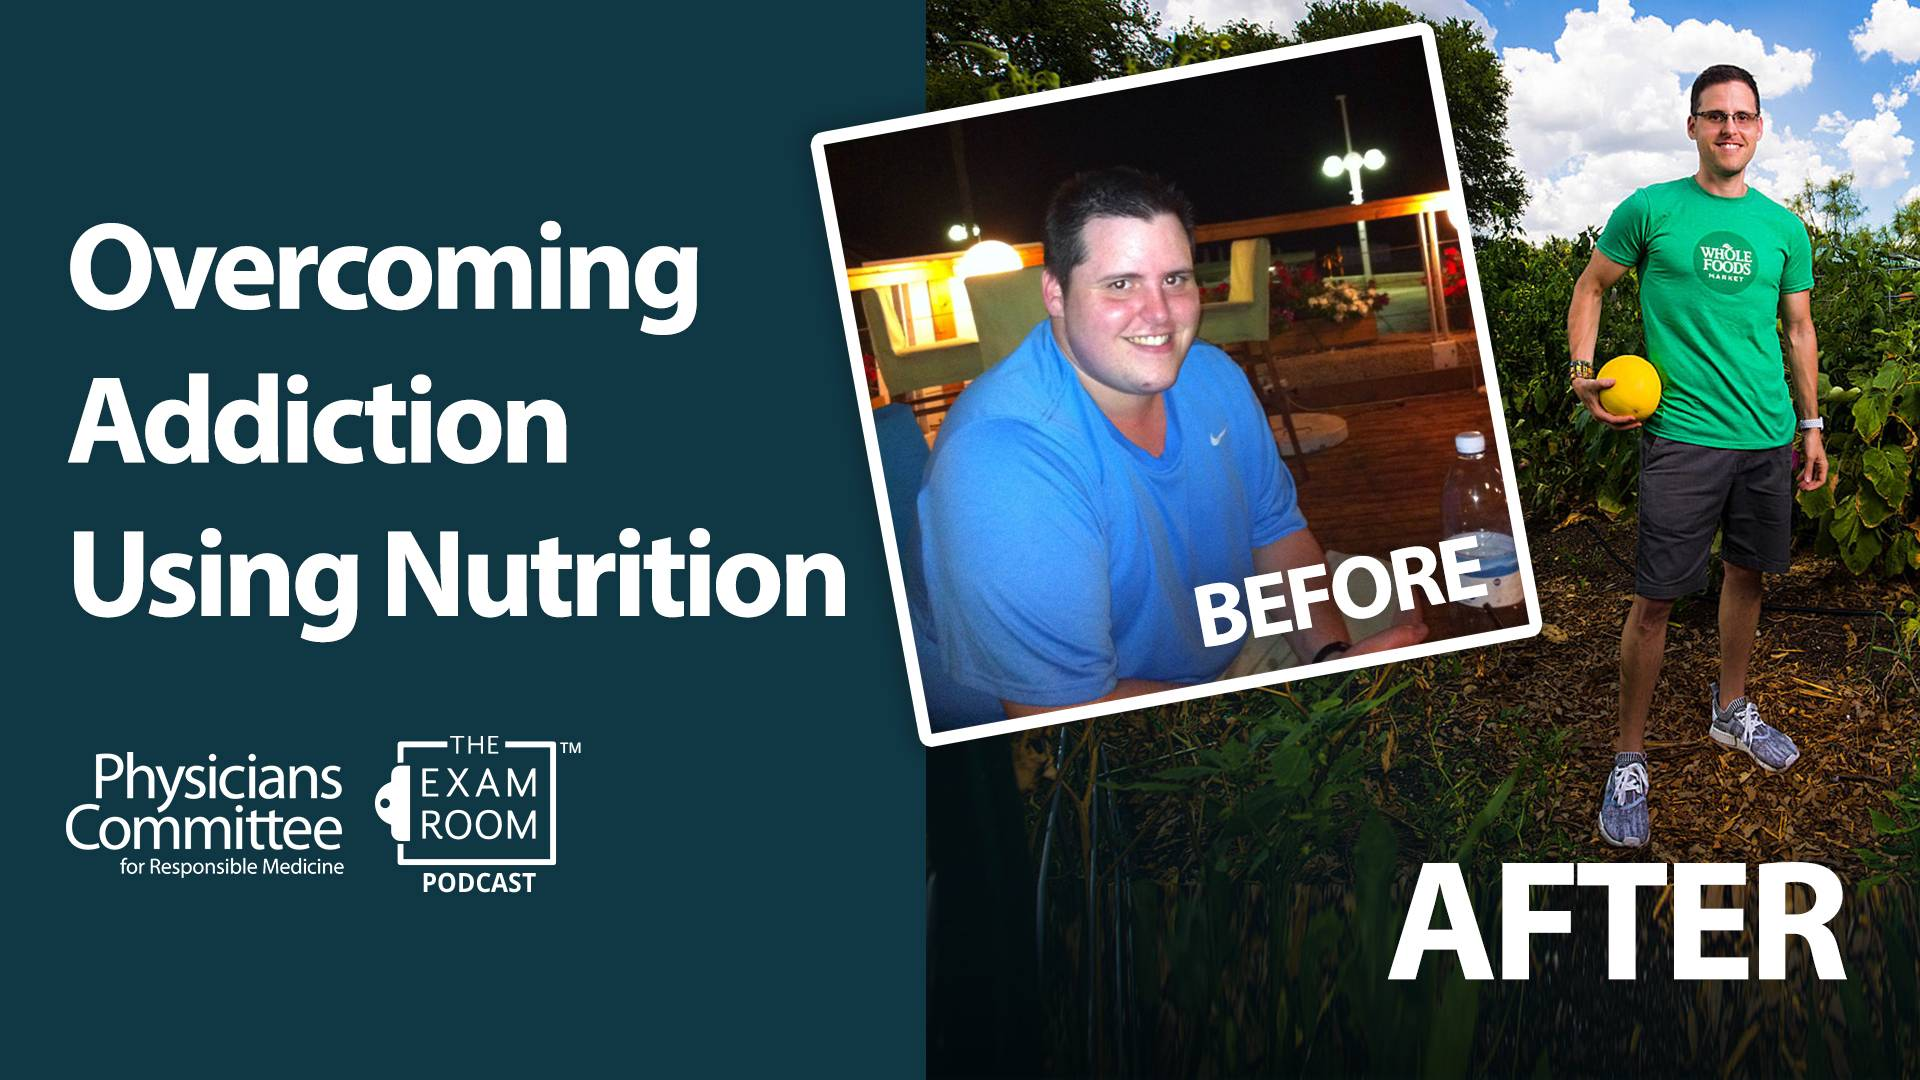 Overcoming Addiction Using Nutrition